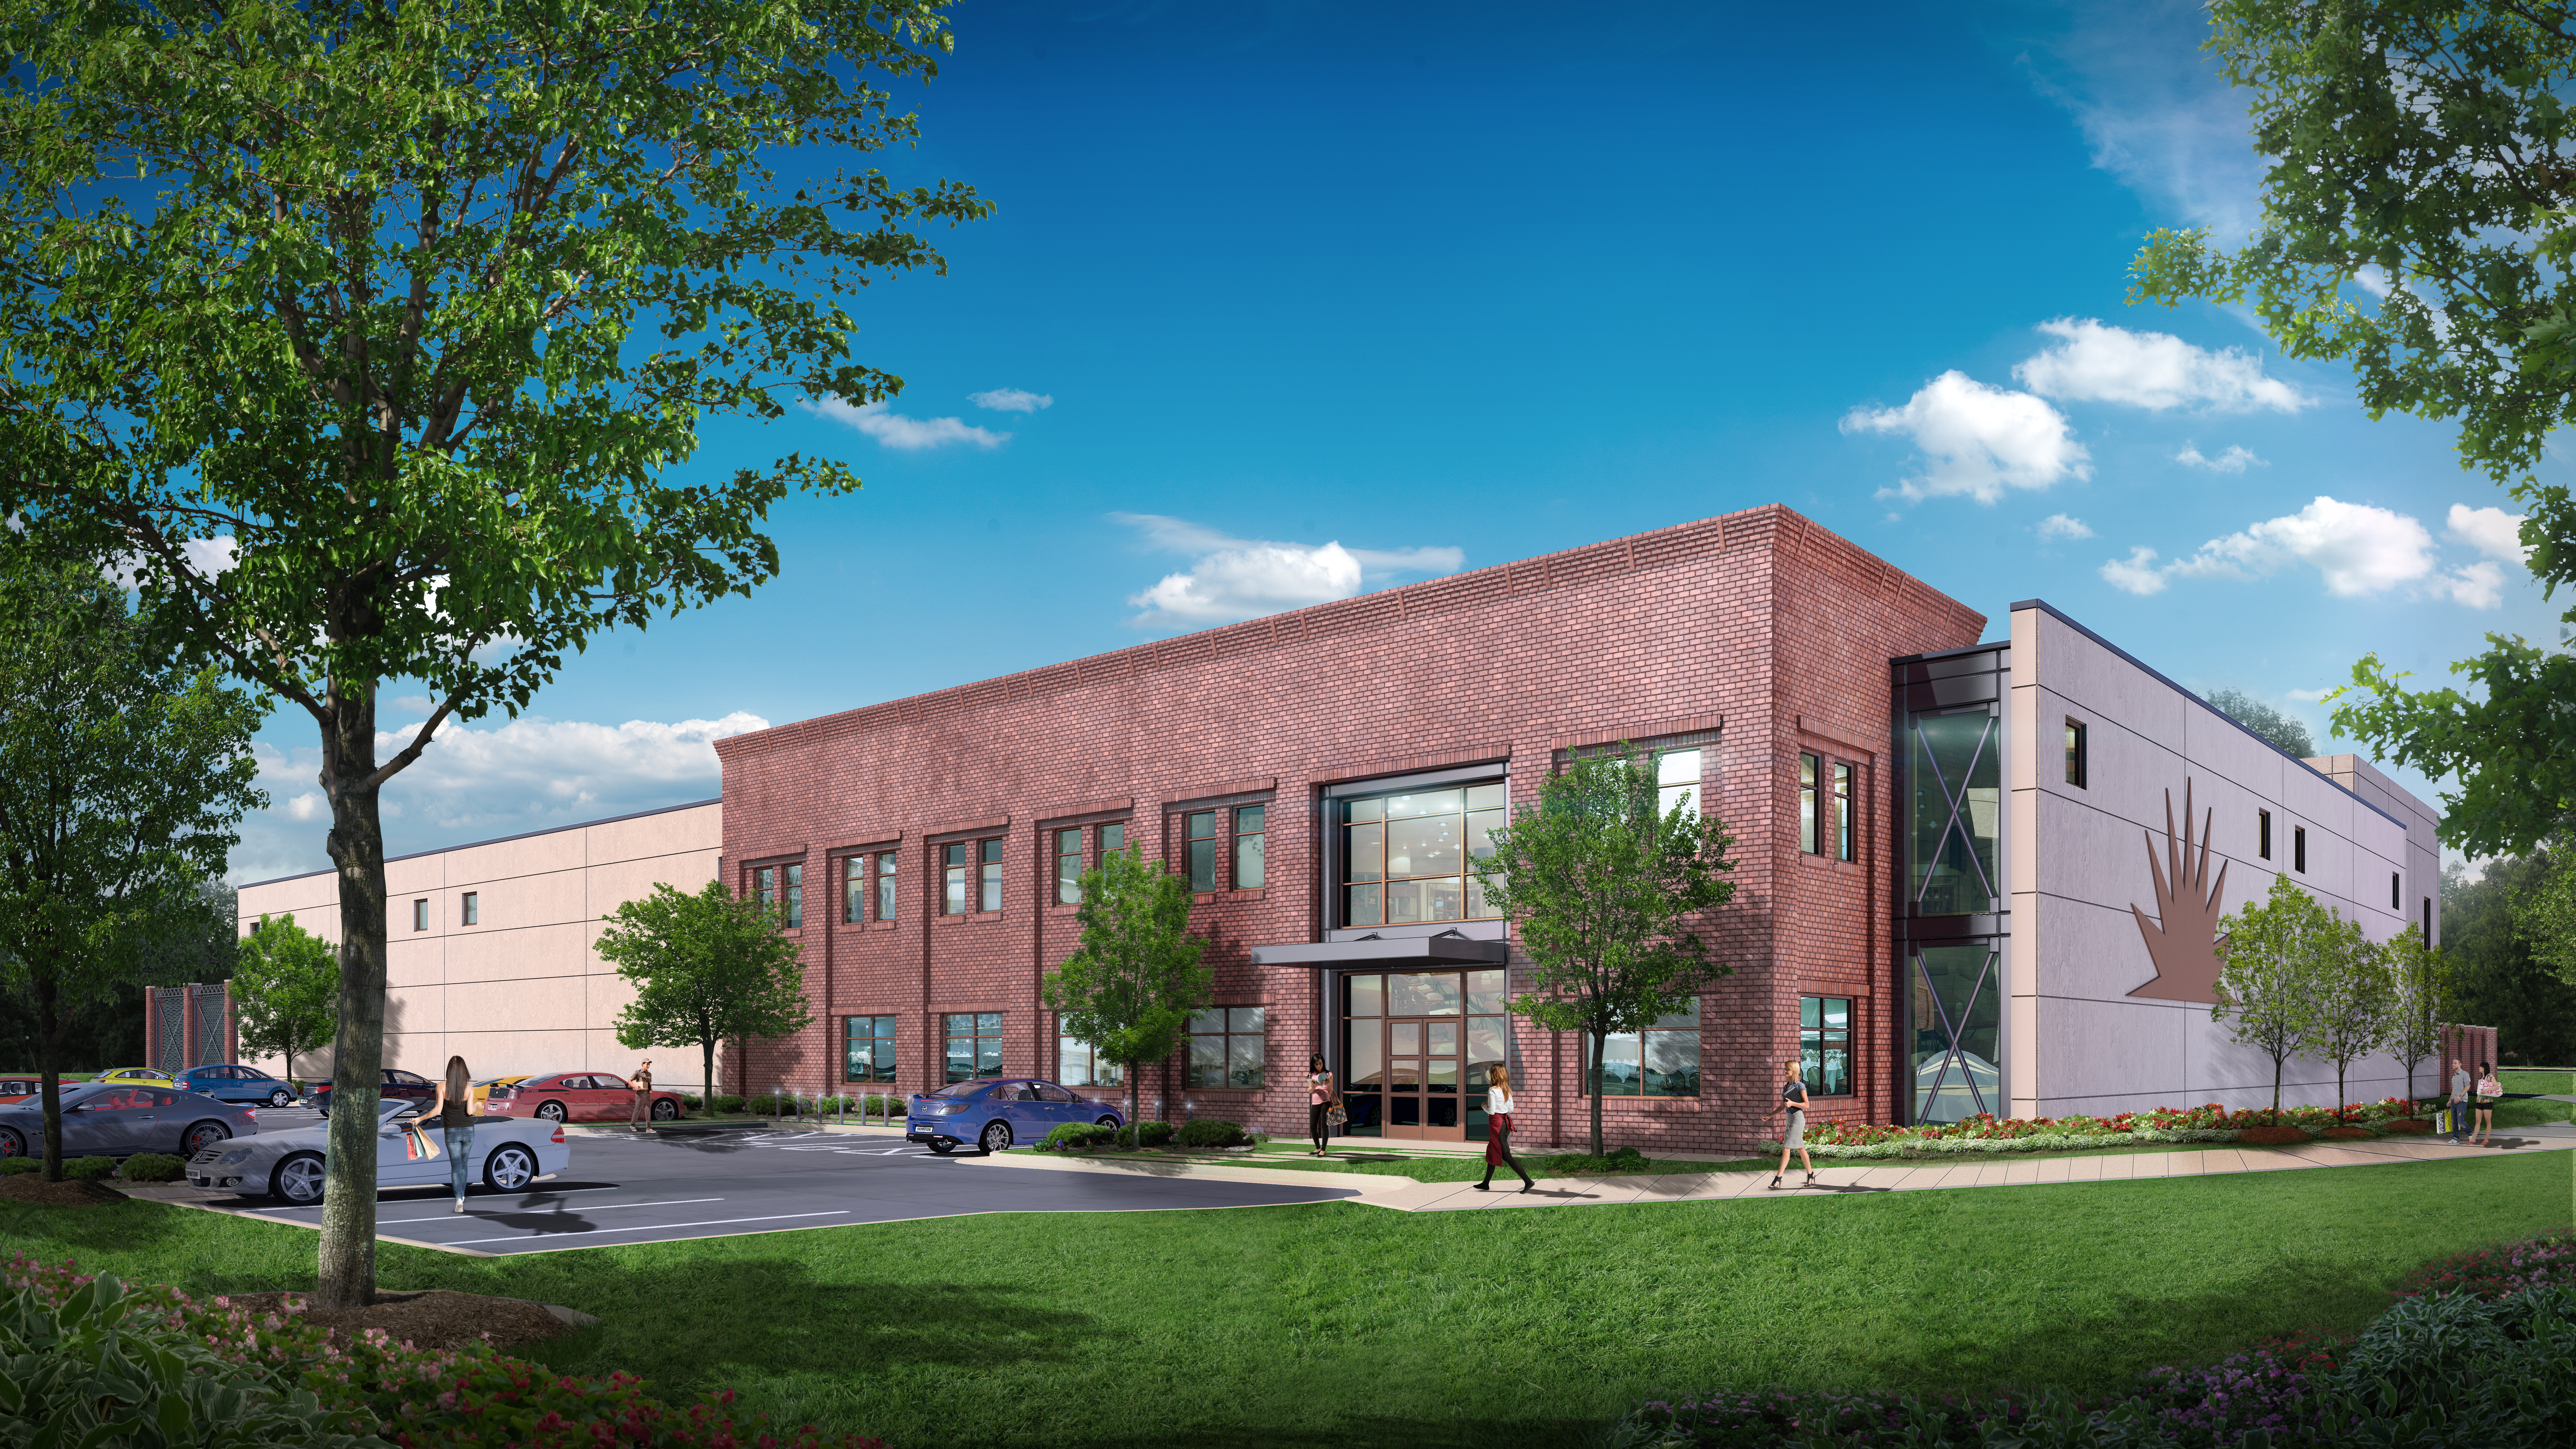 A rendering of the new Virginia Beach, Virginia location of Green Flash Brewing. (image courtesy of Green Flash Brewing)